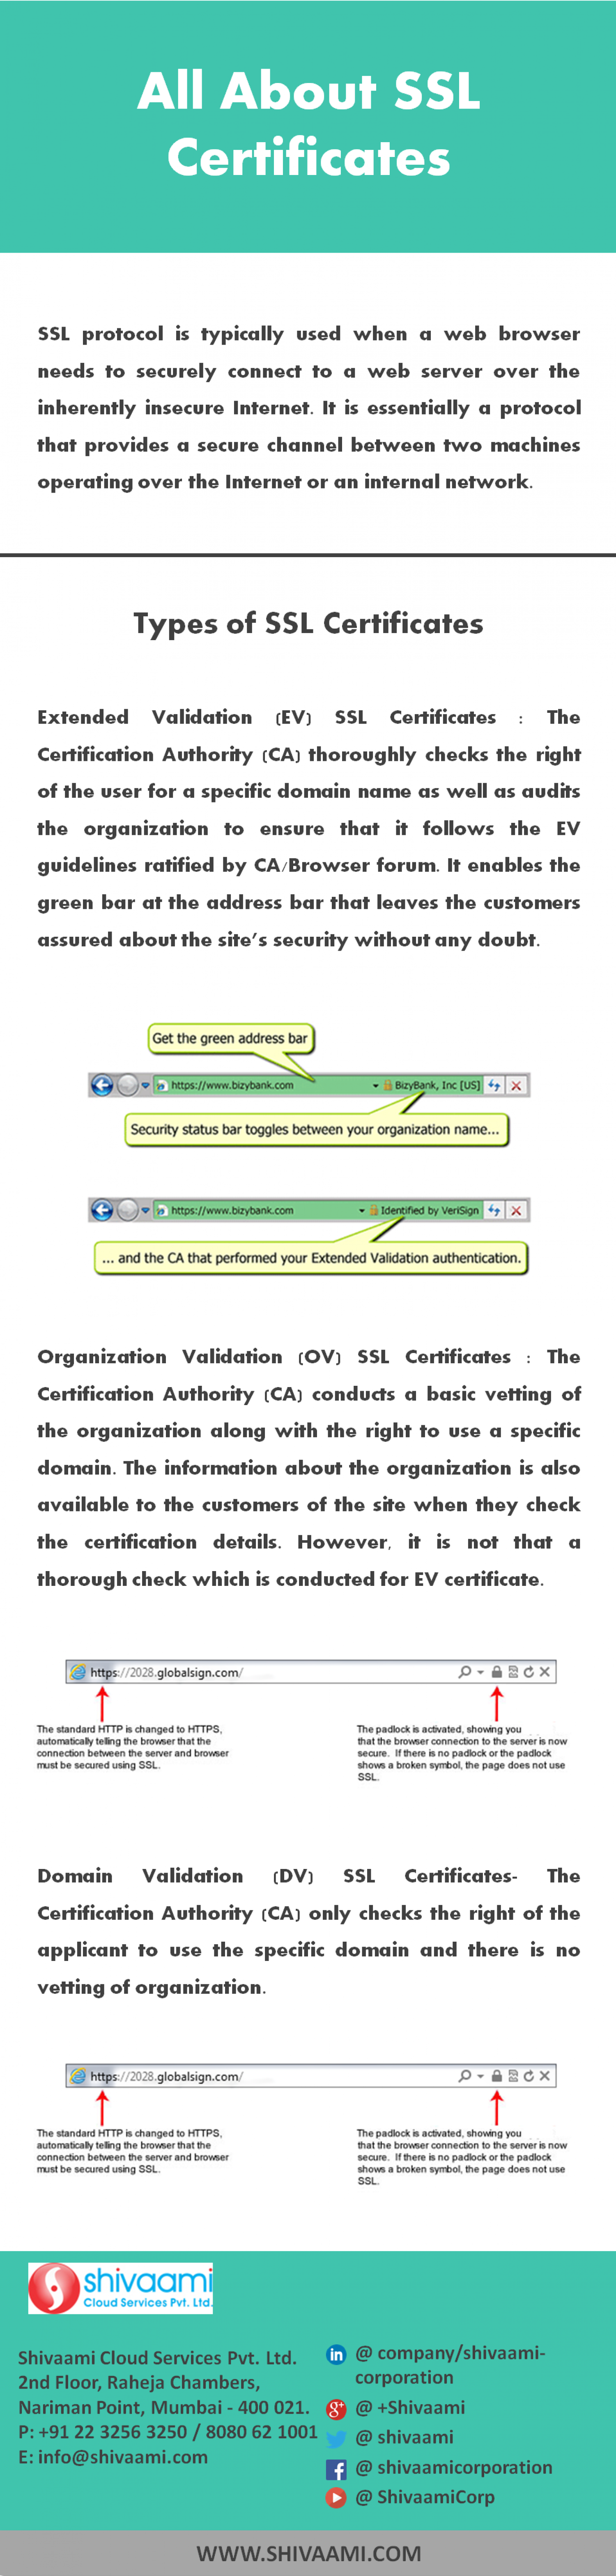 All about ssl certificates visual all about ssl certificates infographic 1betcityfo Image collections